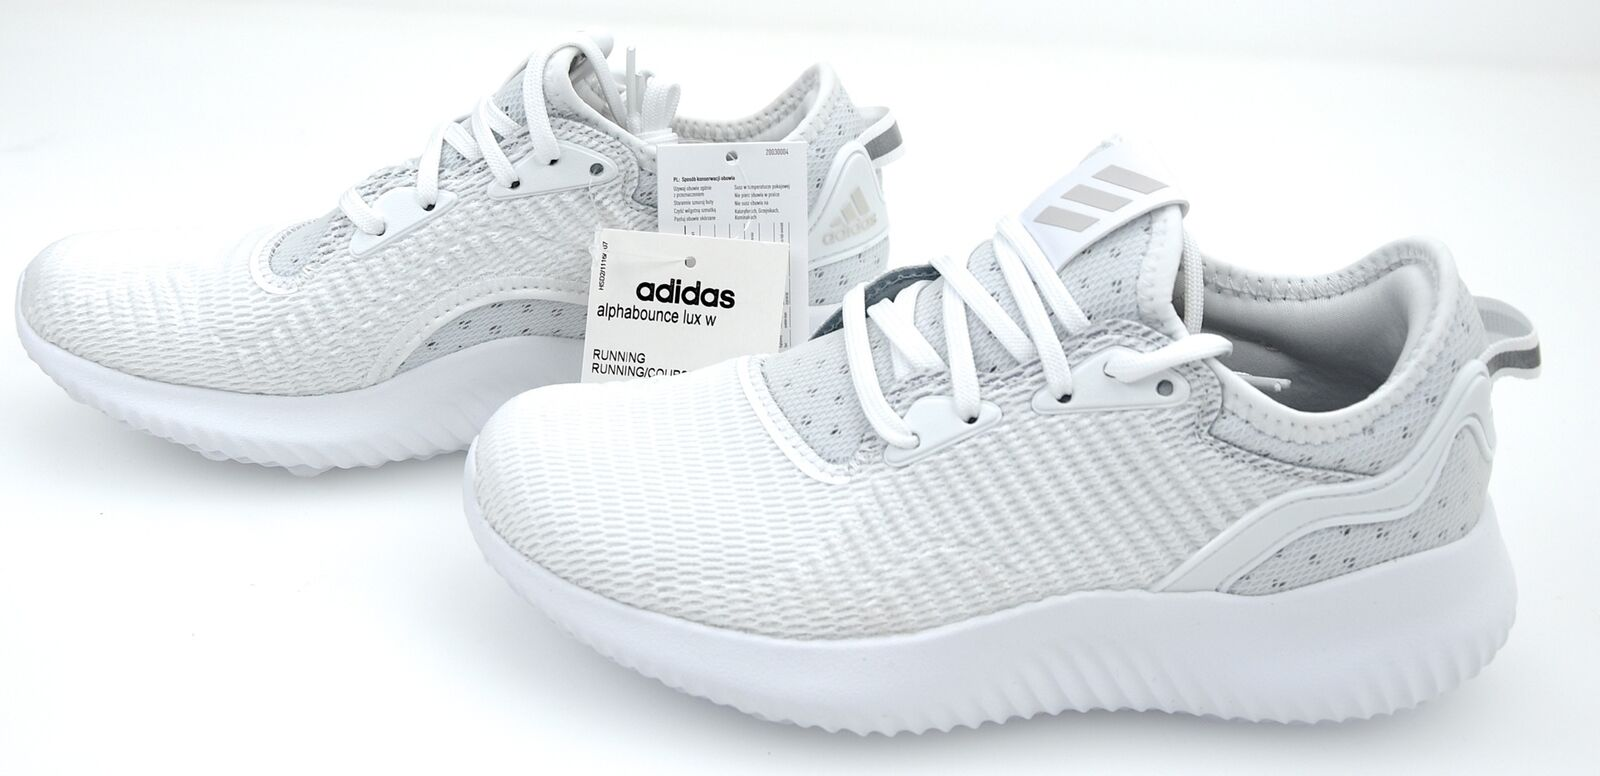 24eace78e68b2 adidas Alphabounce Lux W Triple White Women Running Shoes Sneaker Trainer  BW1217 UK 6 for sale online